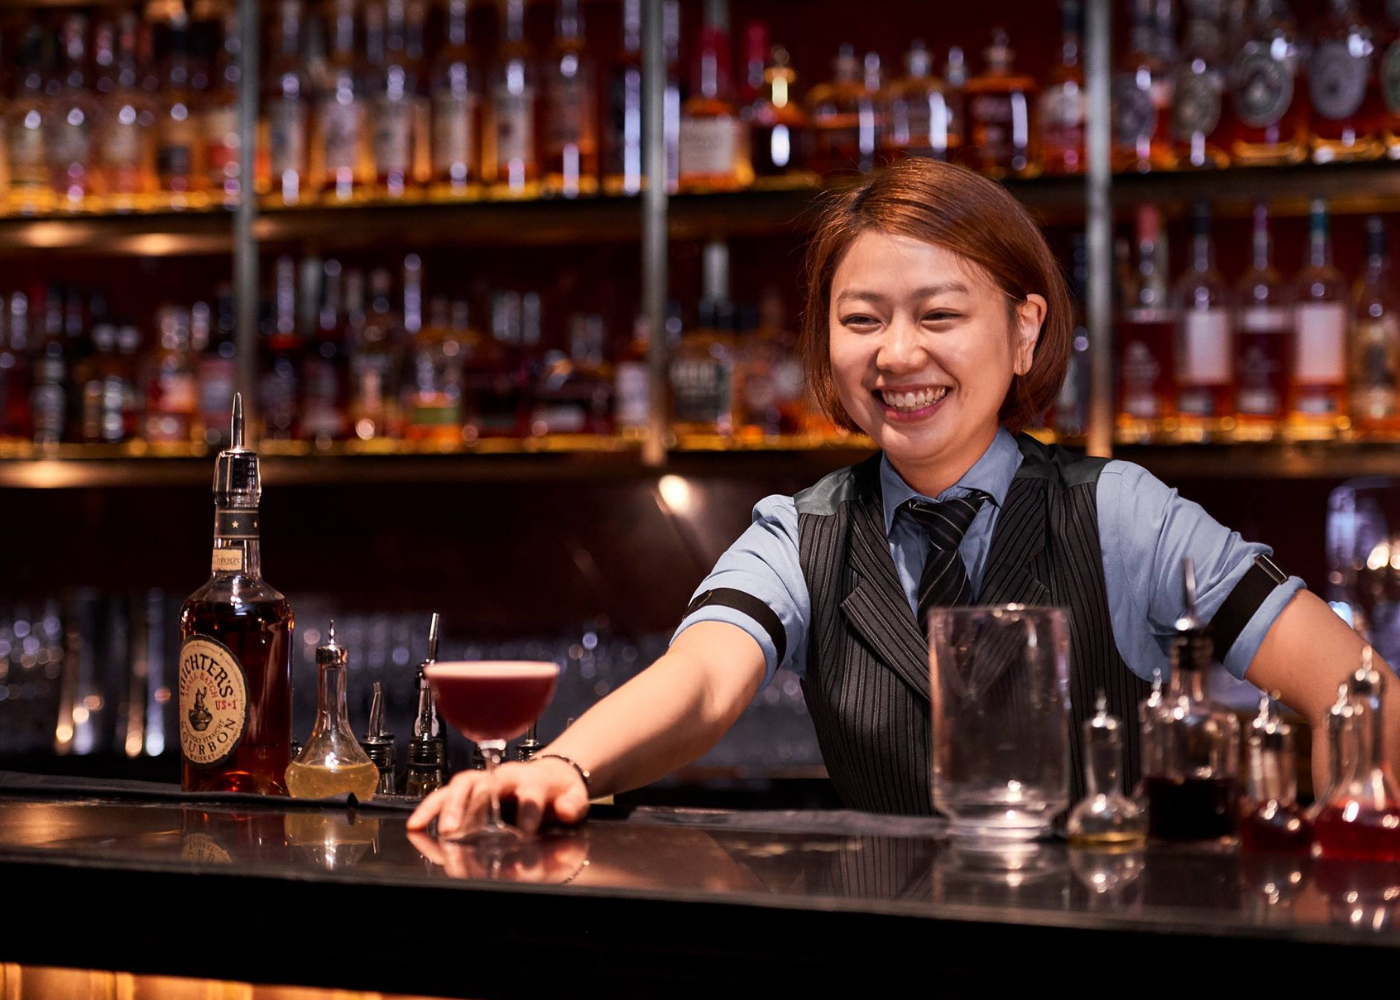 Asia's 50 Best Bars 2019: These 11 Singapore bars made the list